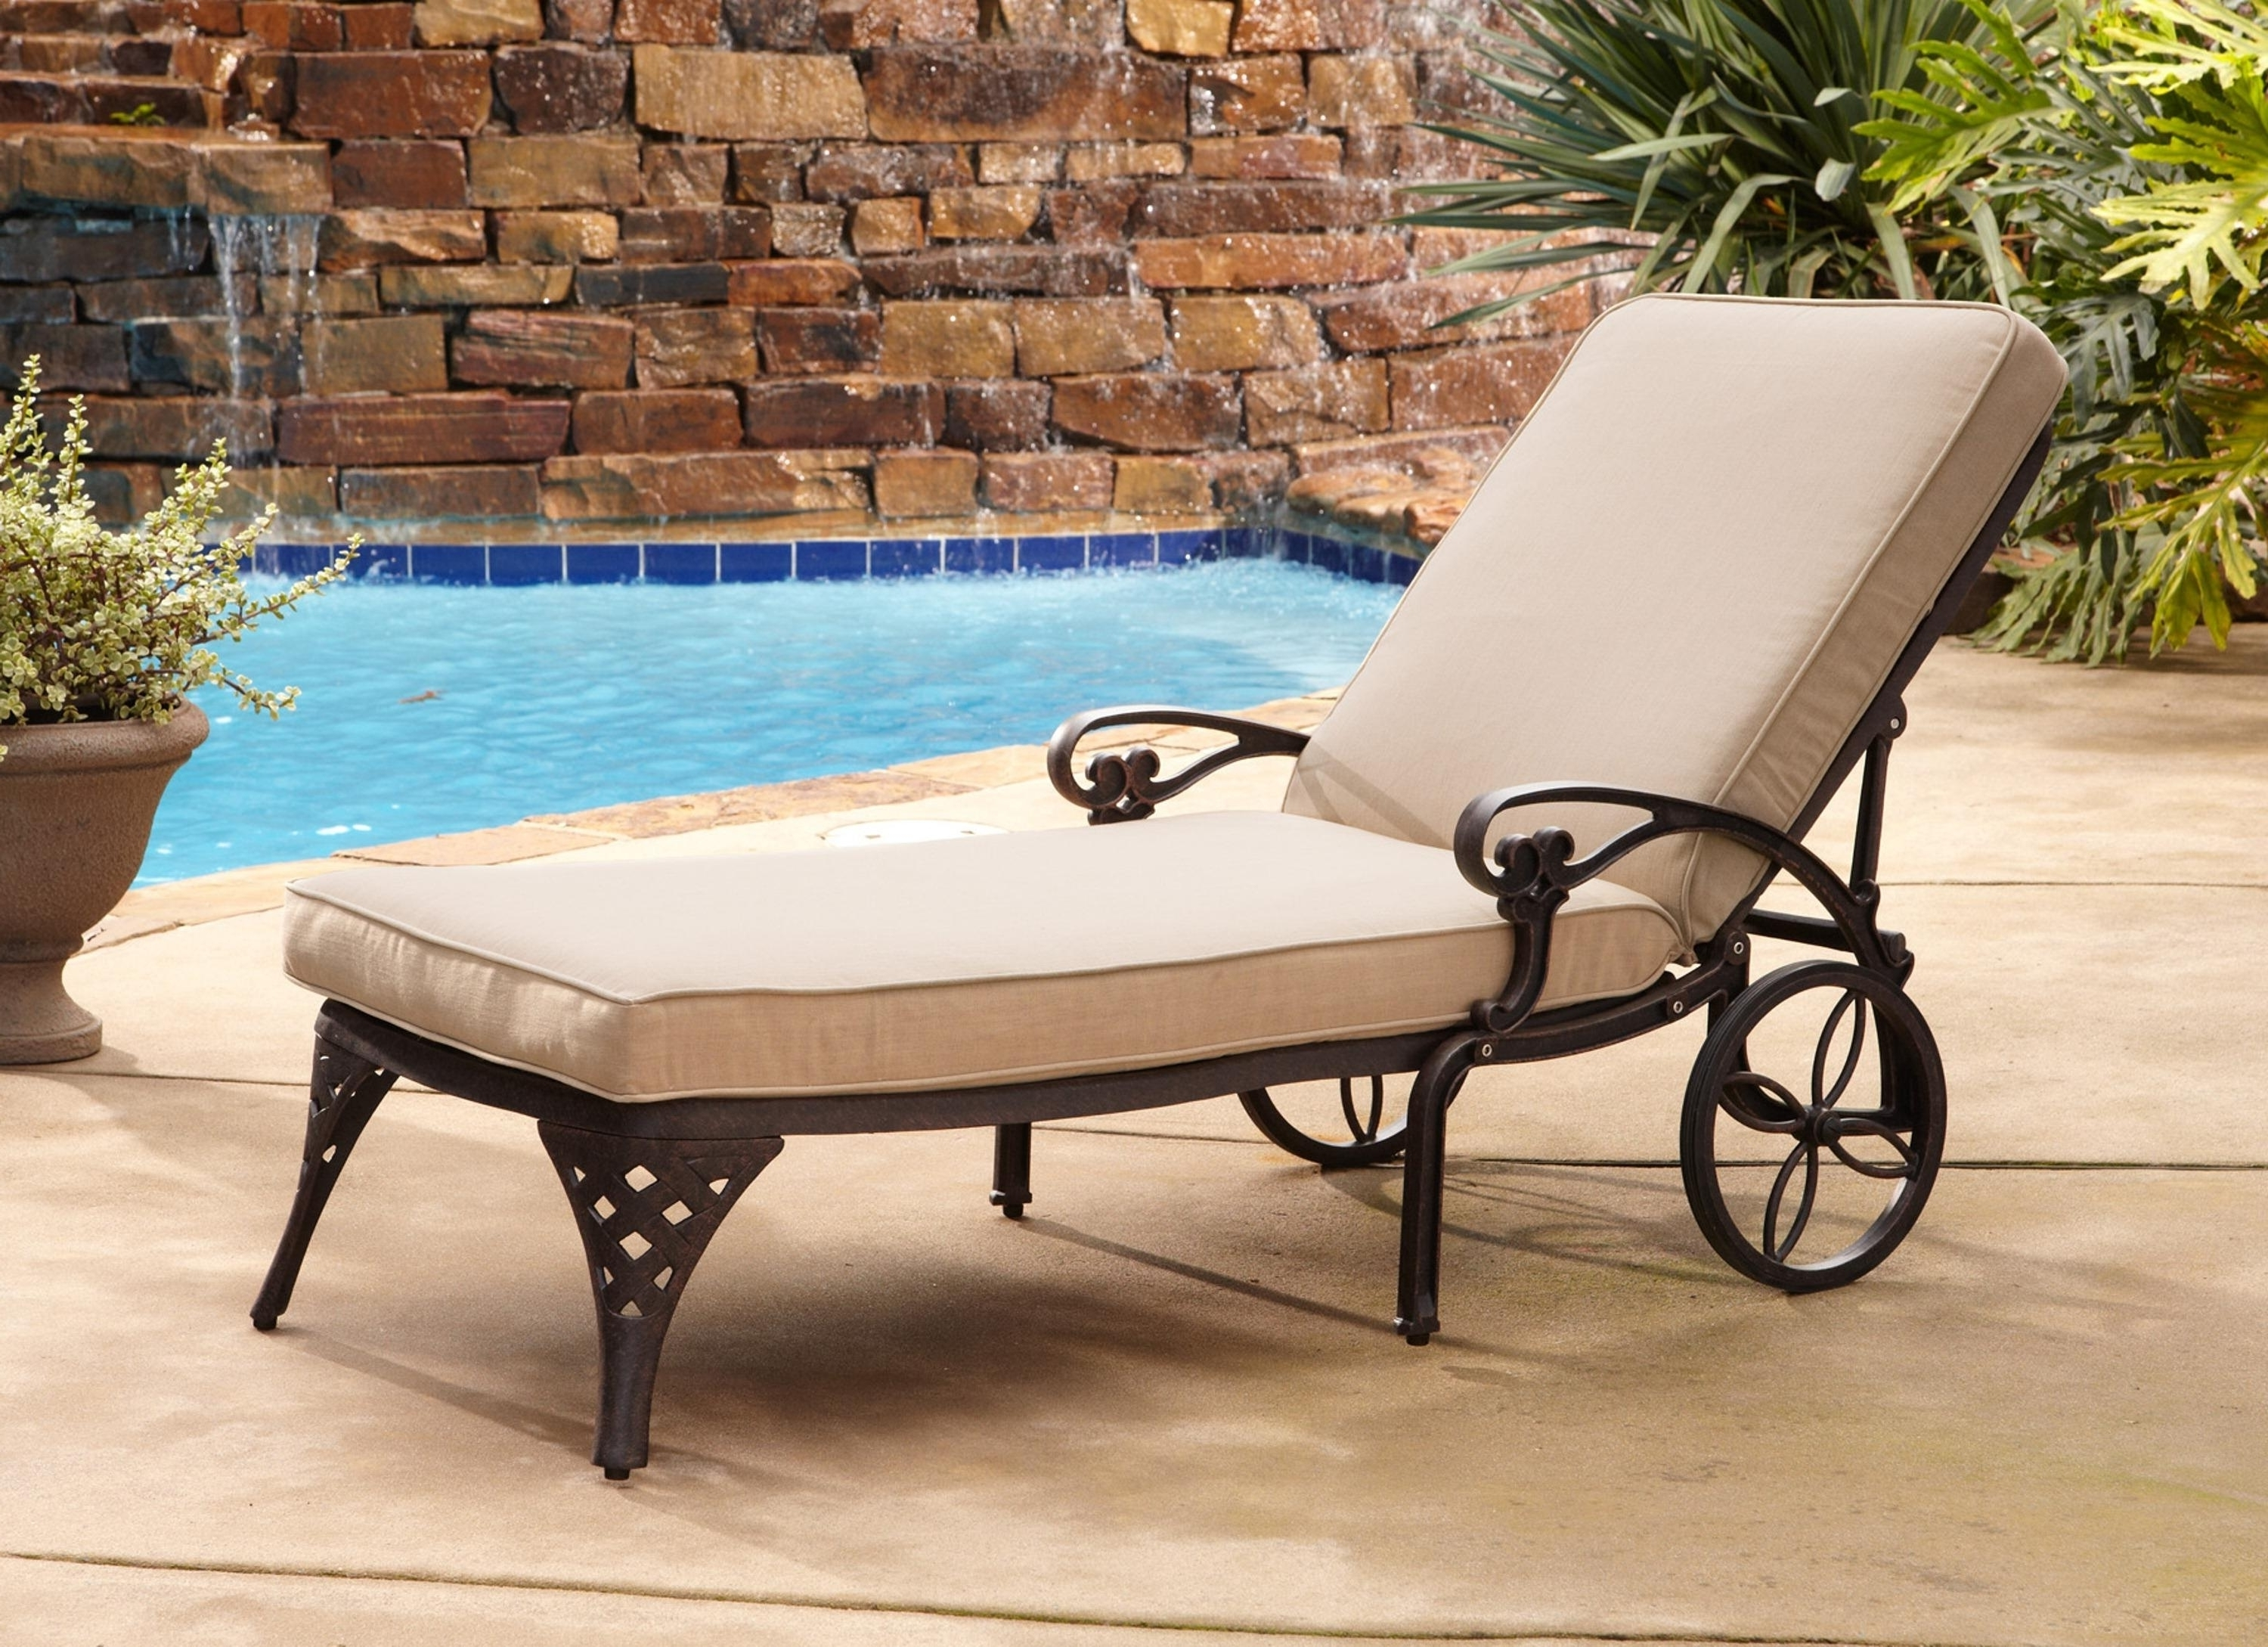 Outdoor Lounge Chairs With Cushions — Bistrodre Porch And With Most Recent Outdoor Cast Aluminum Chaise Lounge Chairs (View 10 of 15)